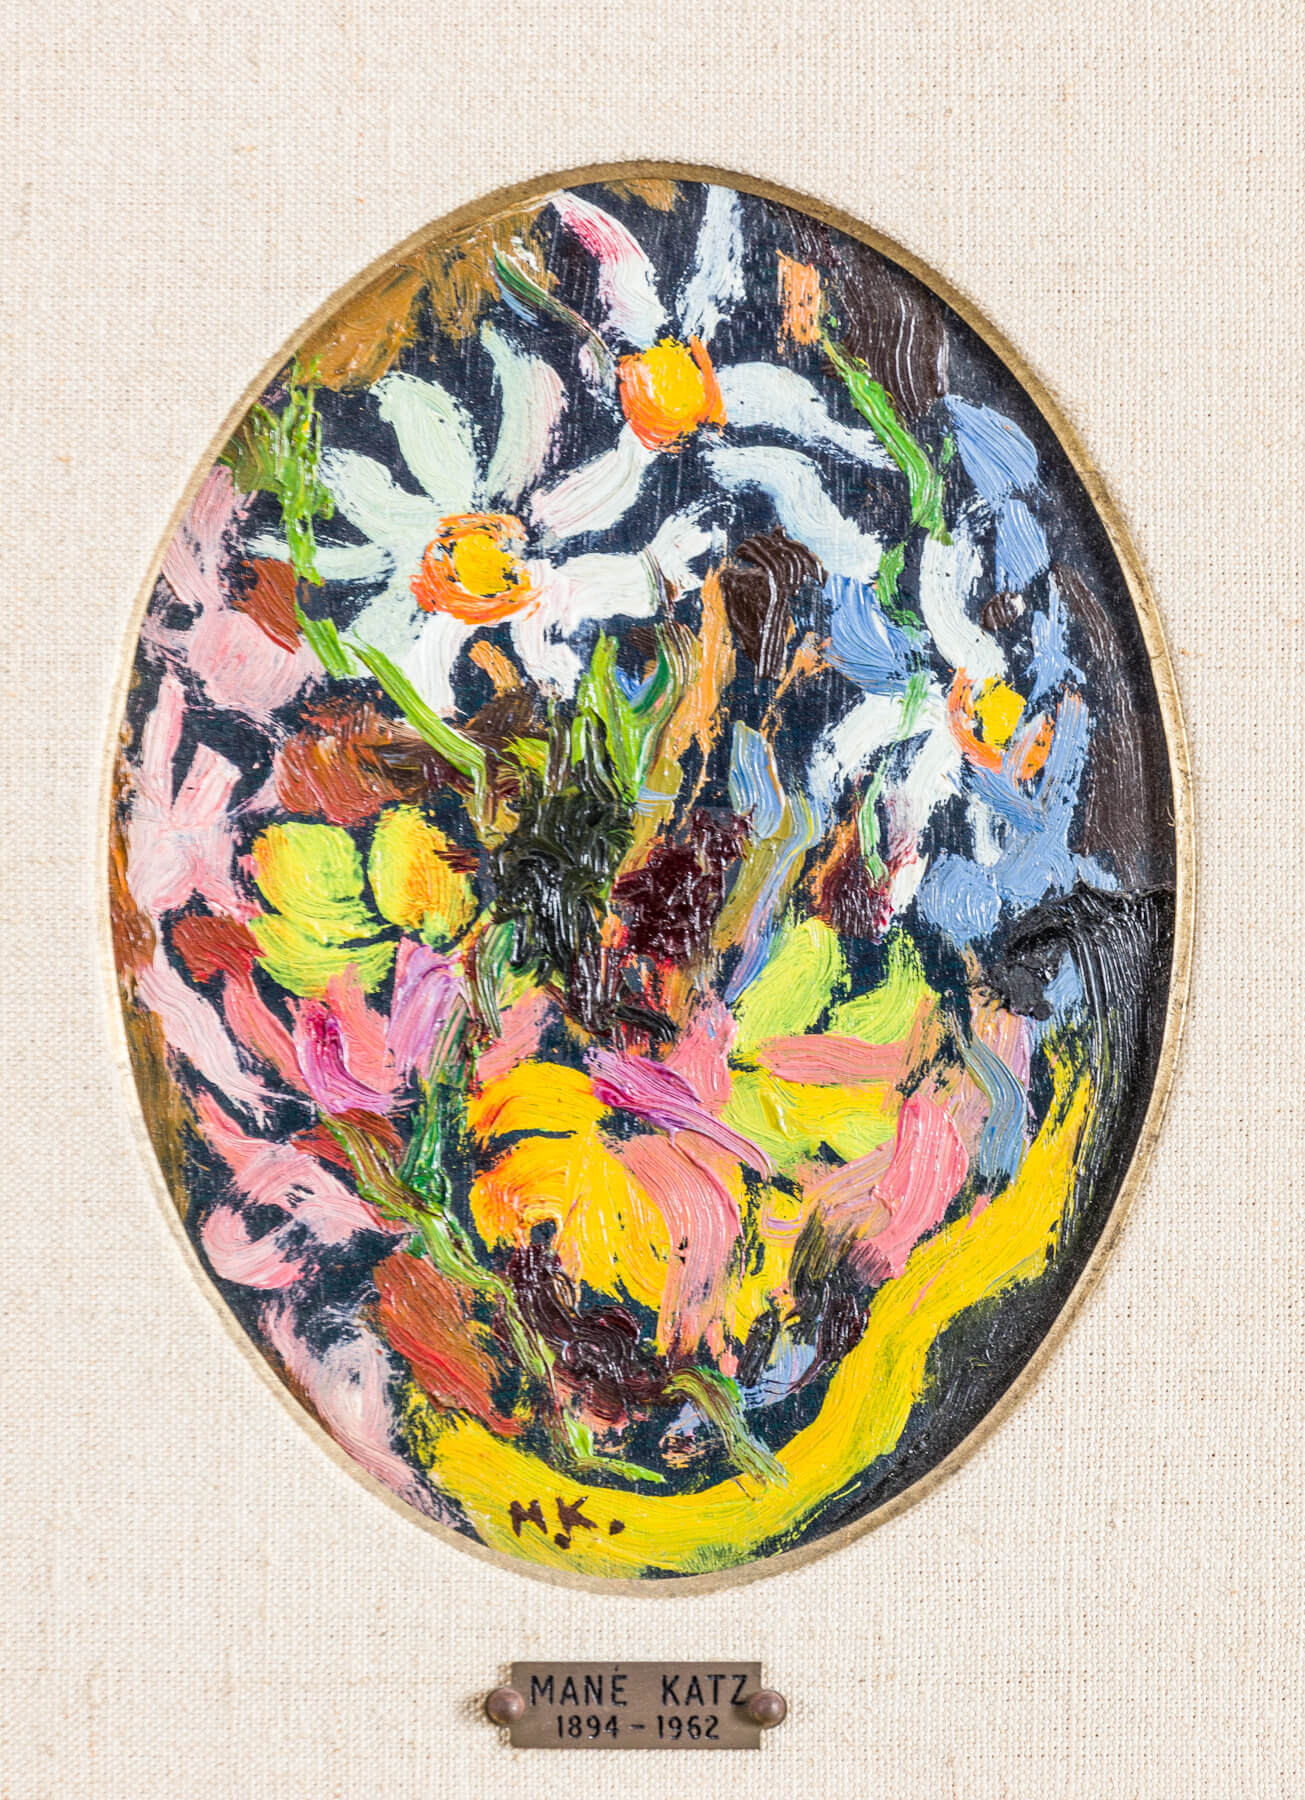 144. A PAIR OF OVAL PAINTINGS BY MANE KATZ